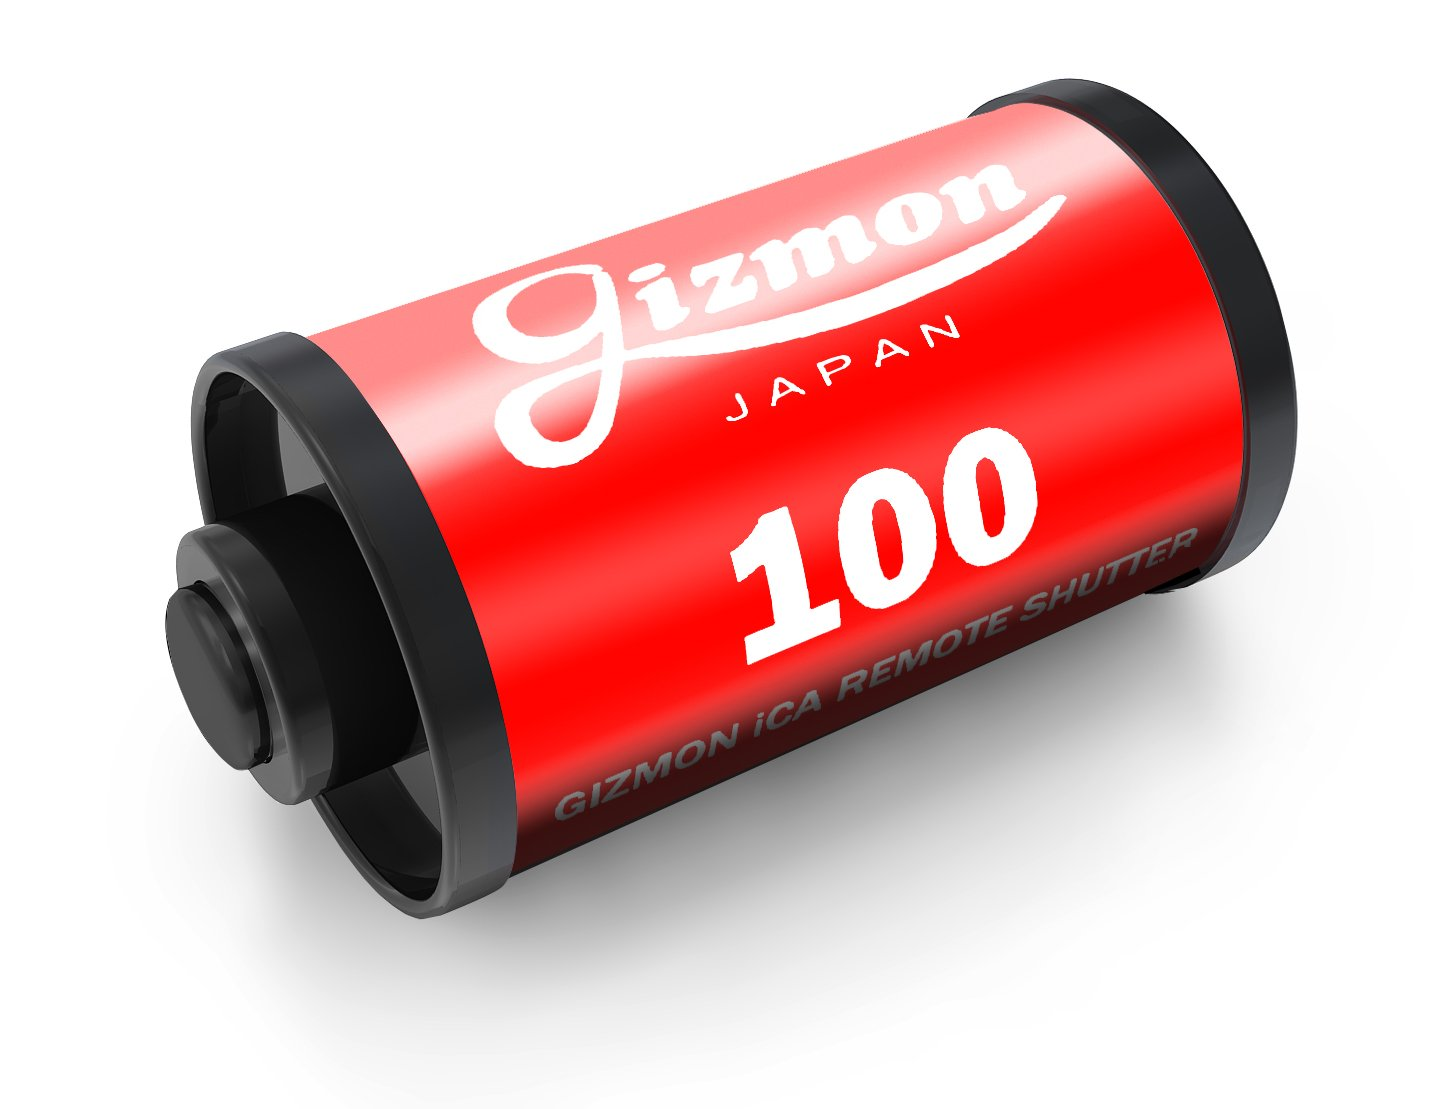 GIZMON iCA REMOTE SHUTTER A For Apple iPhone/iPad/iPod Touch RED